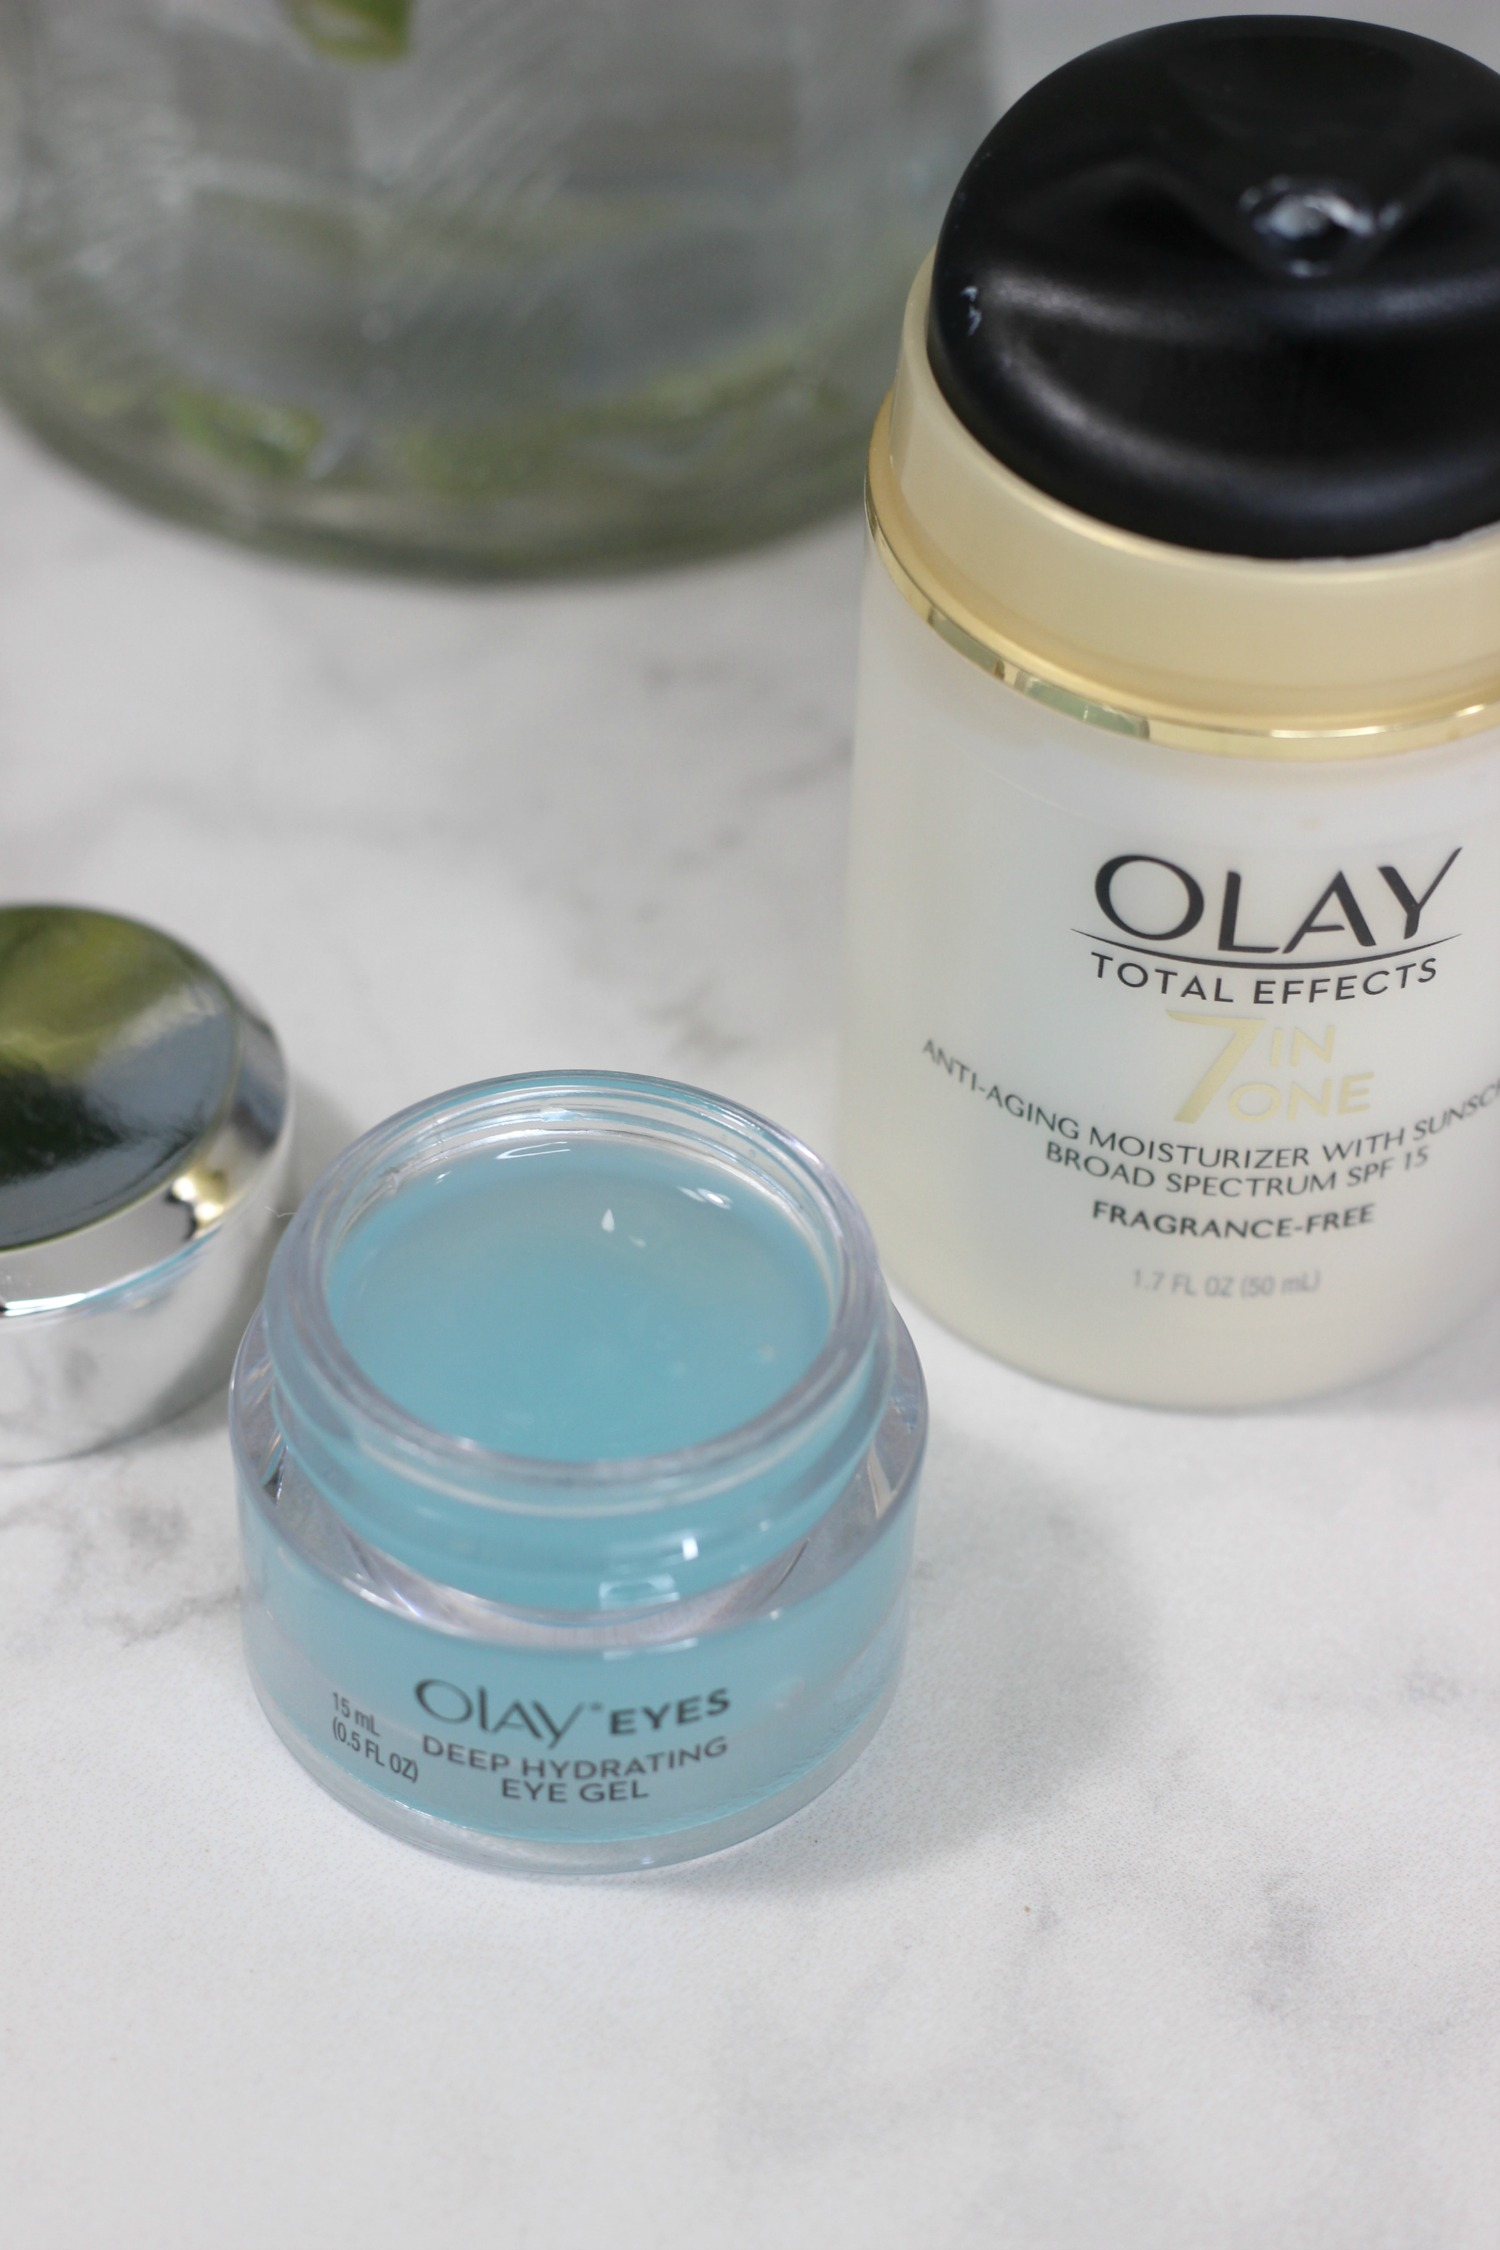 Olay Total Effects SPF15 Olay Deep Hydrating Eye Gel